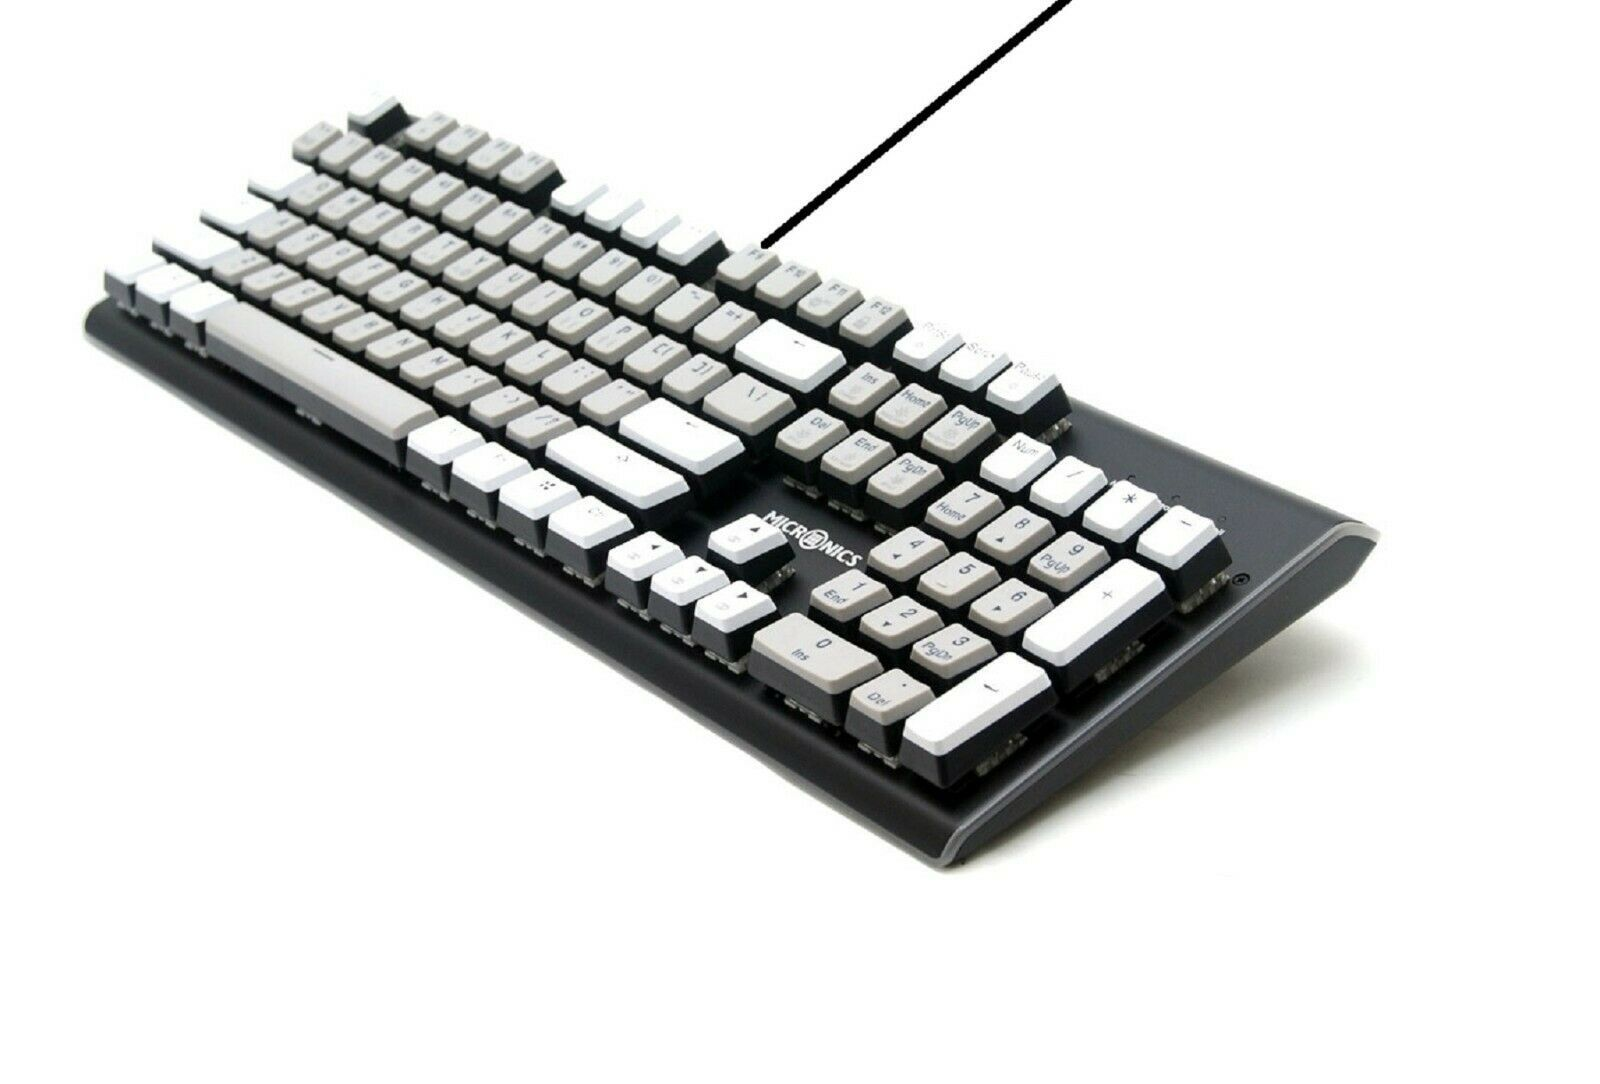 Micronics K735 Mechanical Gaming Keyboard Black Body (Kailh Box Switch White)